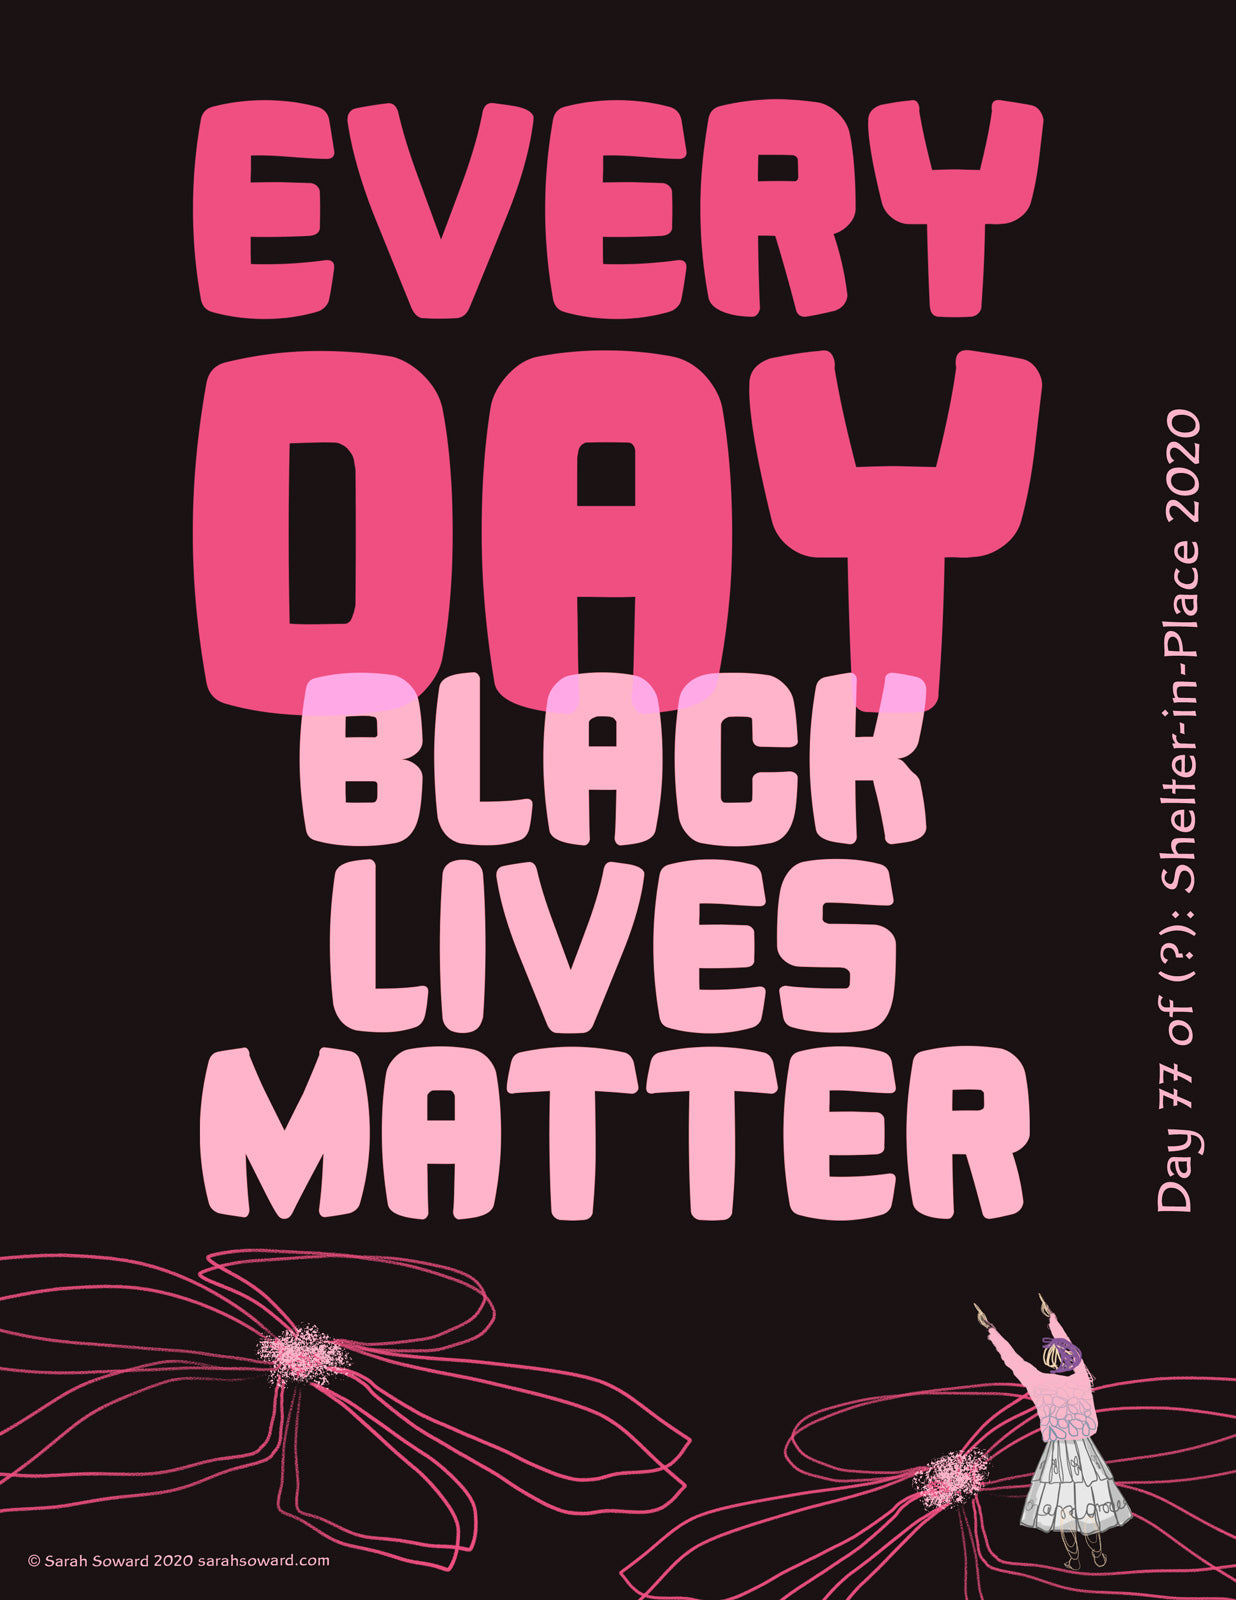 The text on the image reads, Every Day Black Lives Matter. Below the large text are a couple line drawings of flowers and a quick sketch of a woman in a white skirt with a pink-to-blue sweater on pointing up at the words because that's what's really important here.